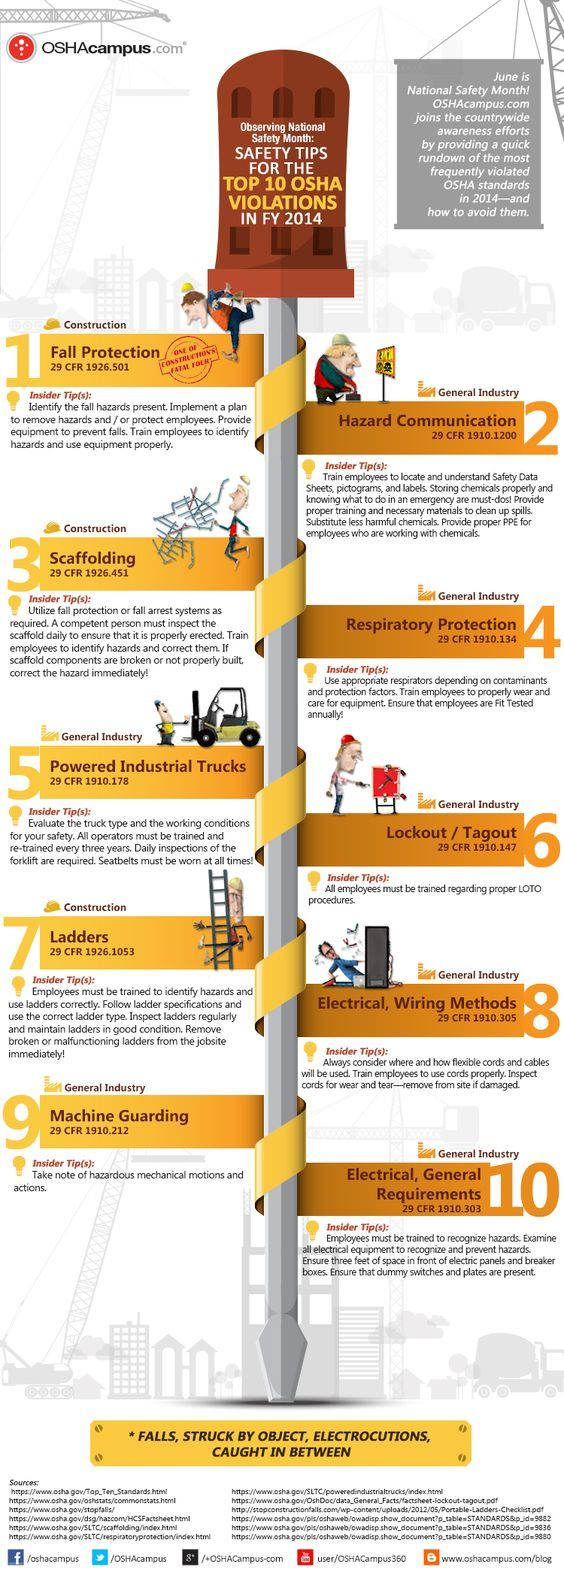 Best Esst Images On   Safety Posters Office Safety